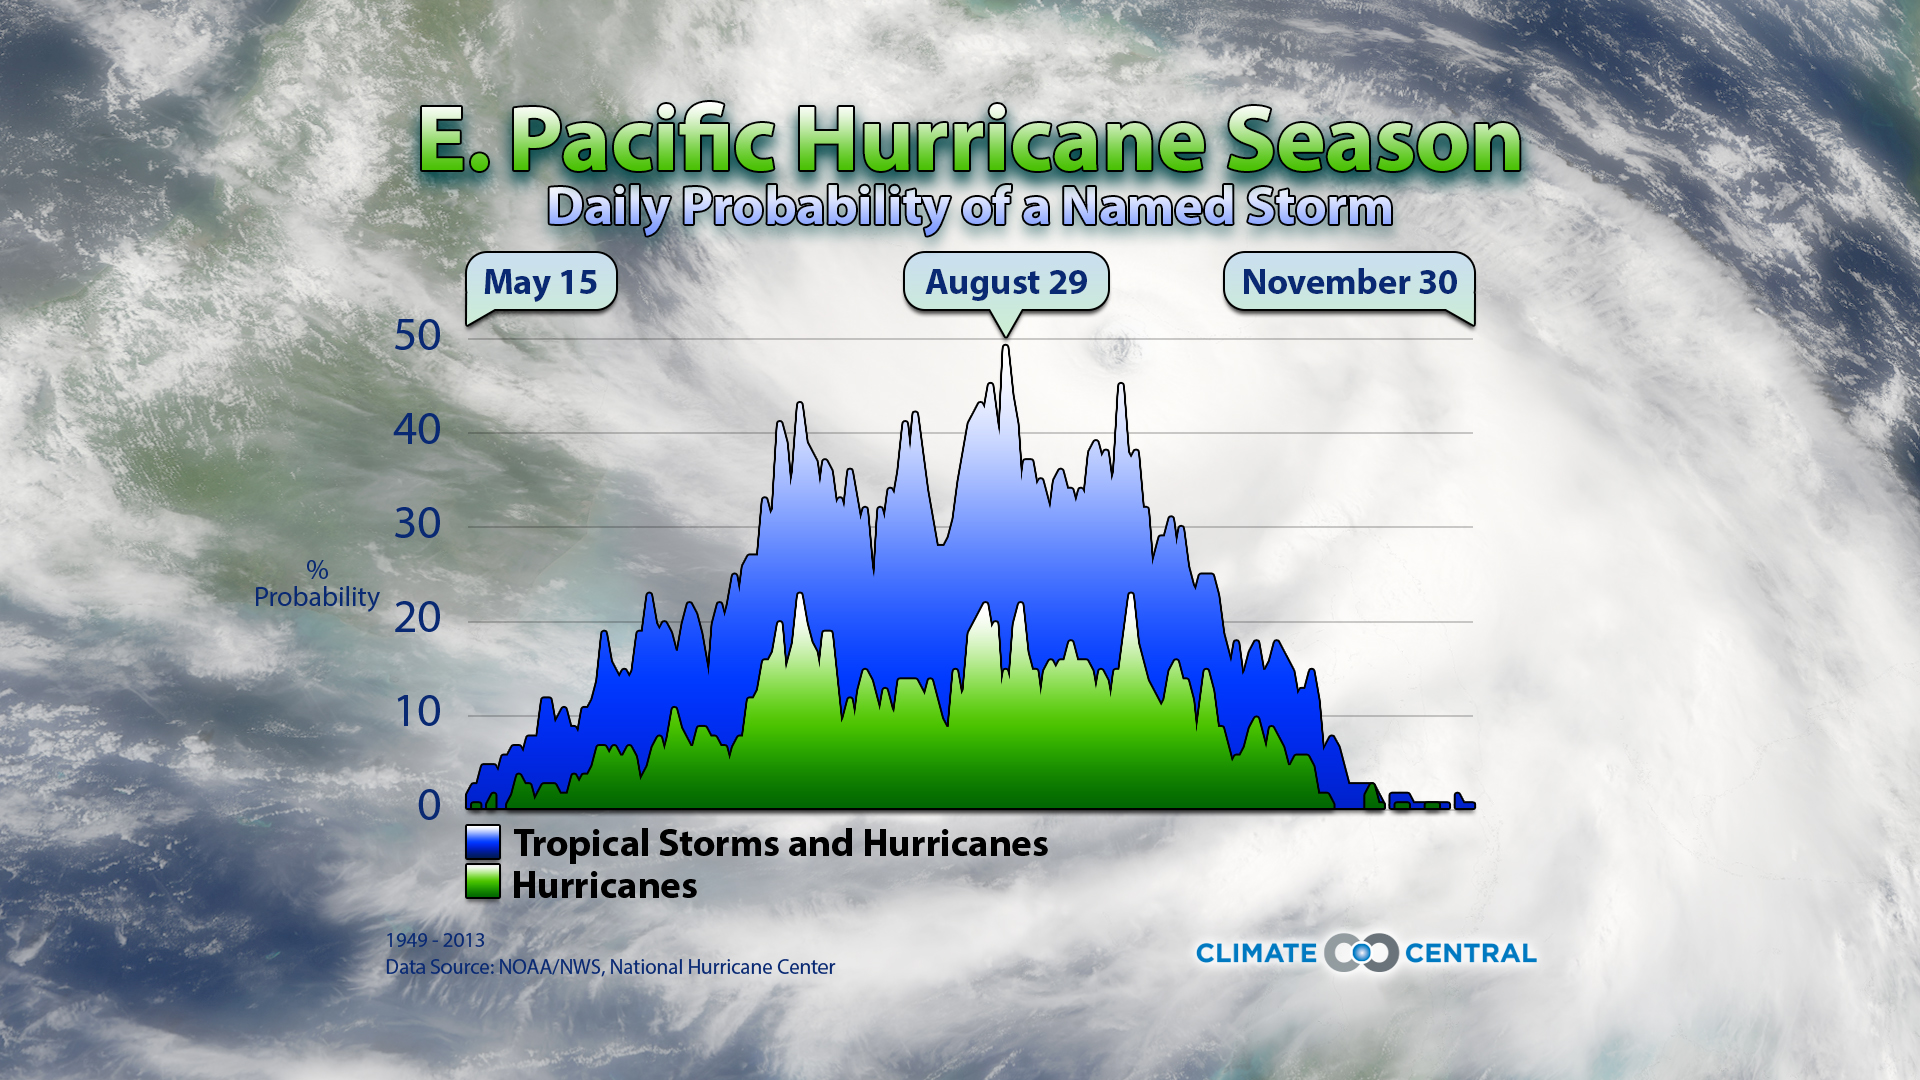 Eastern Pacific Hurricane Season